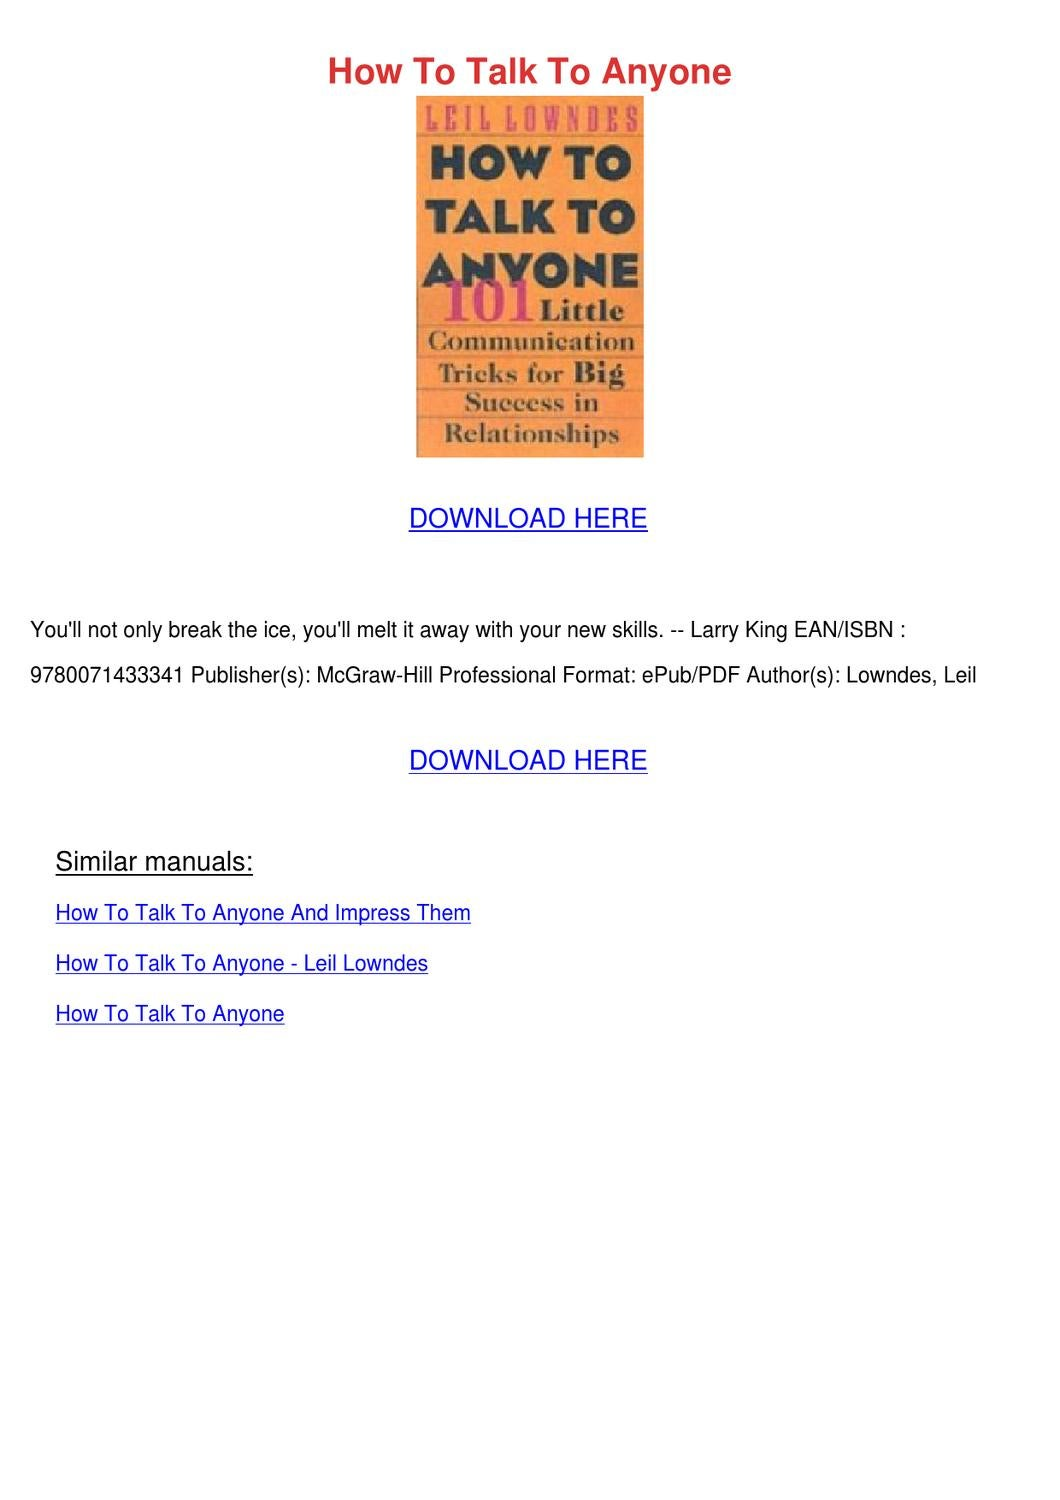 how to talk to anyone leil lowndes audiobook download